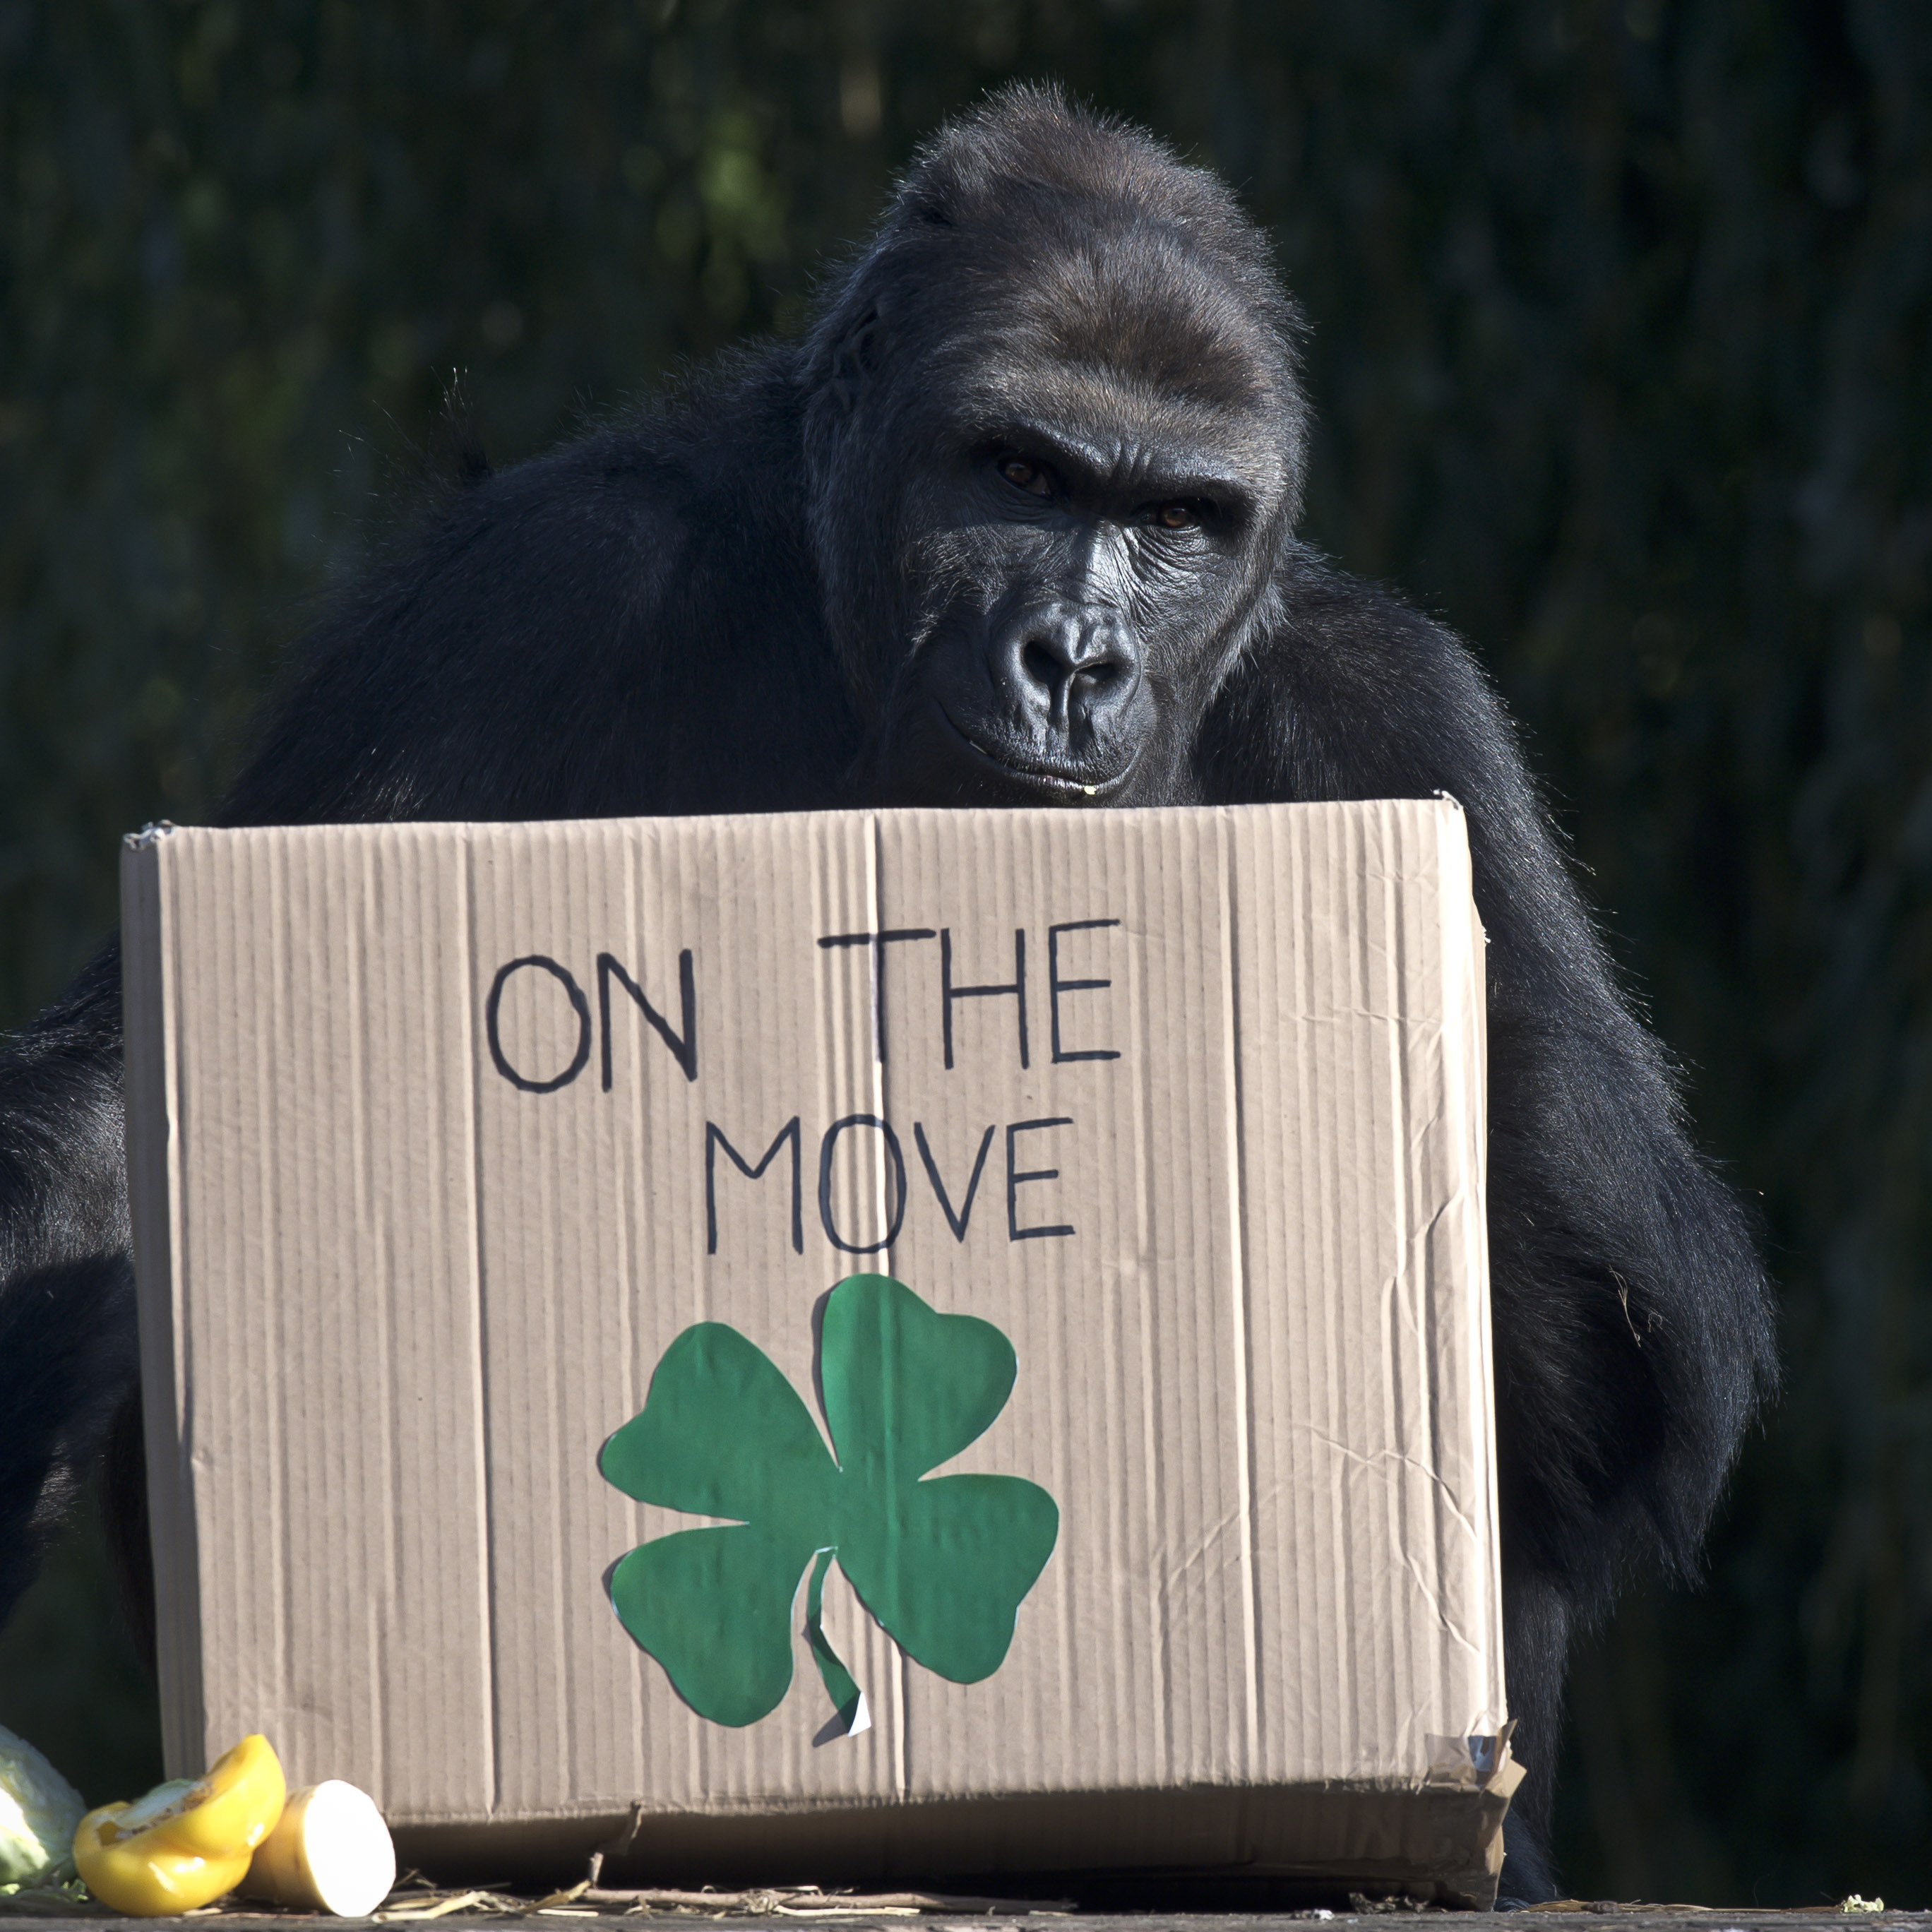 King of the swingers: Zoo throws farewell party for gorilla off to start new family